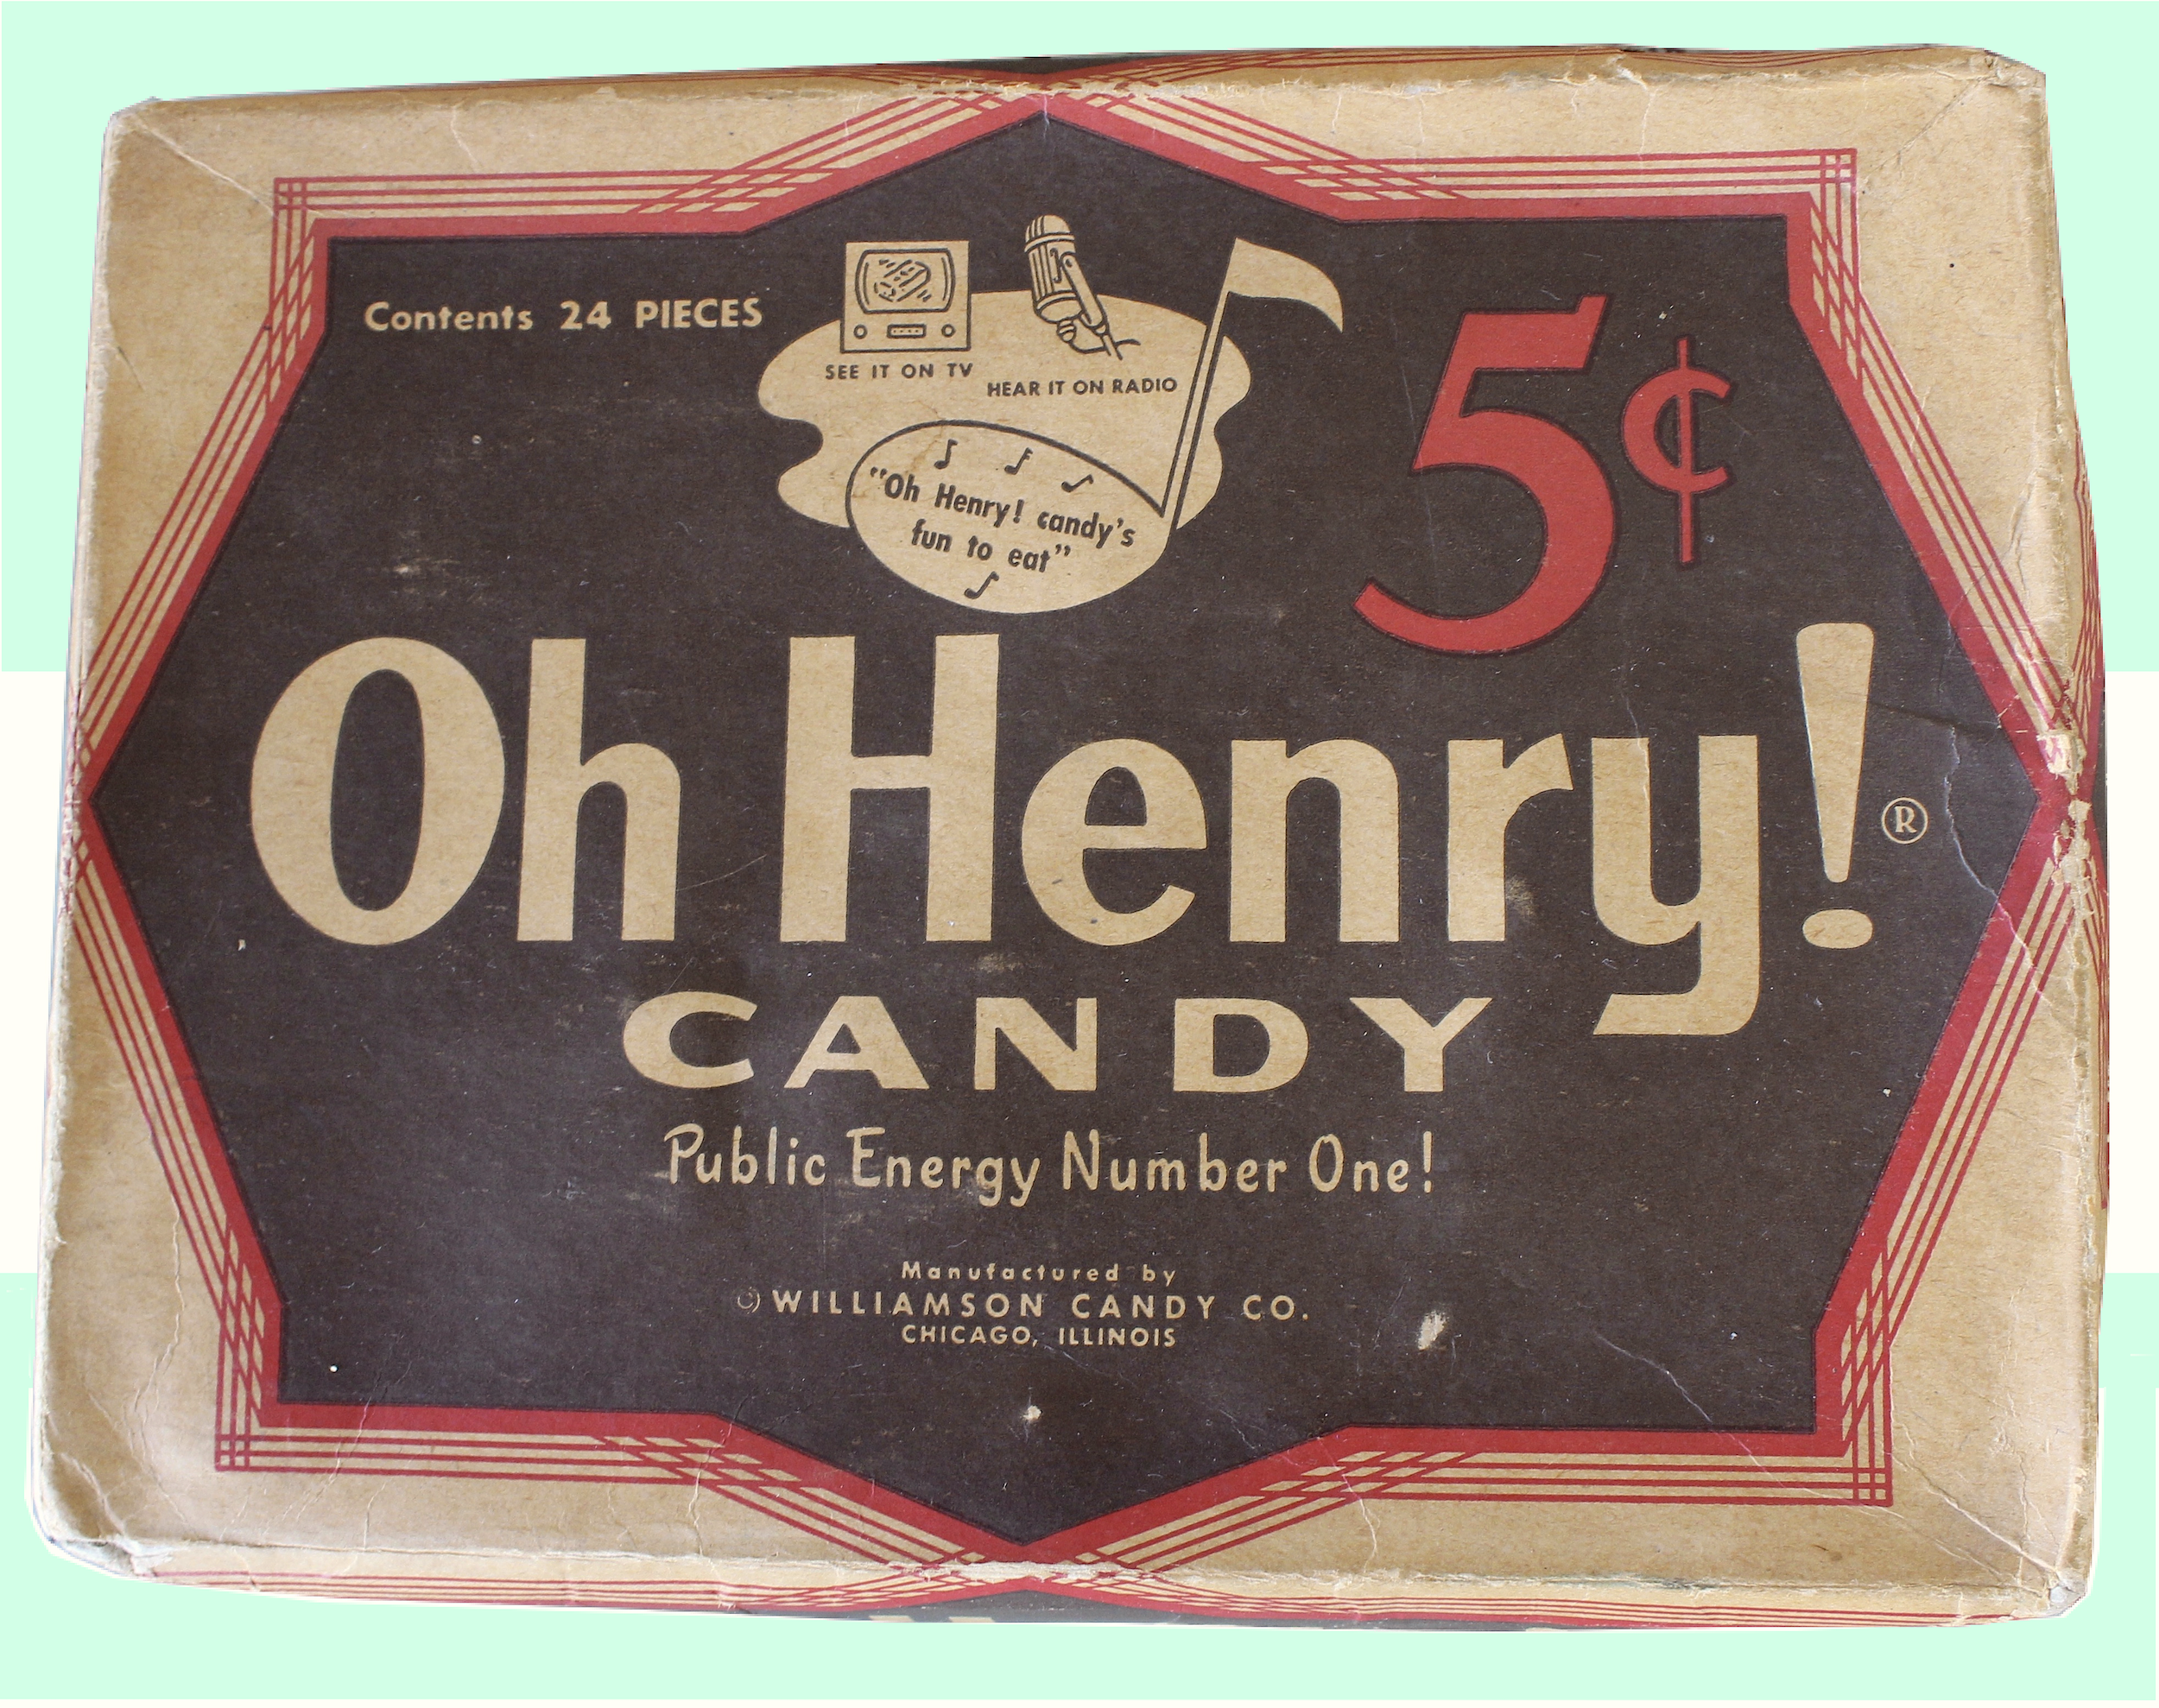 Oh Henry candy box